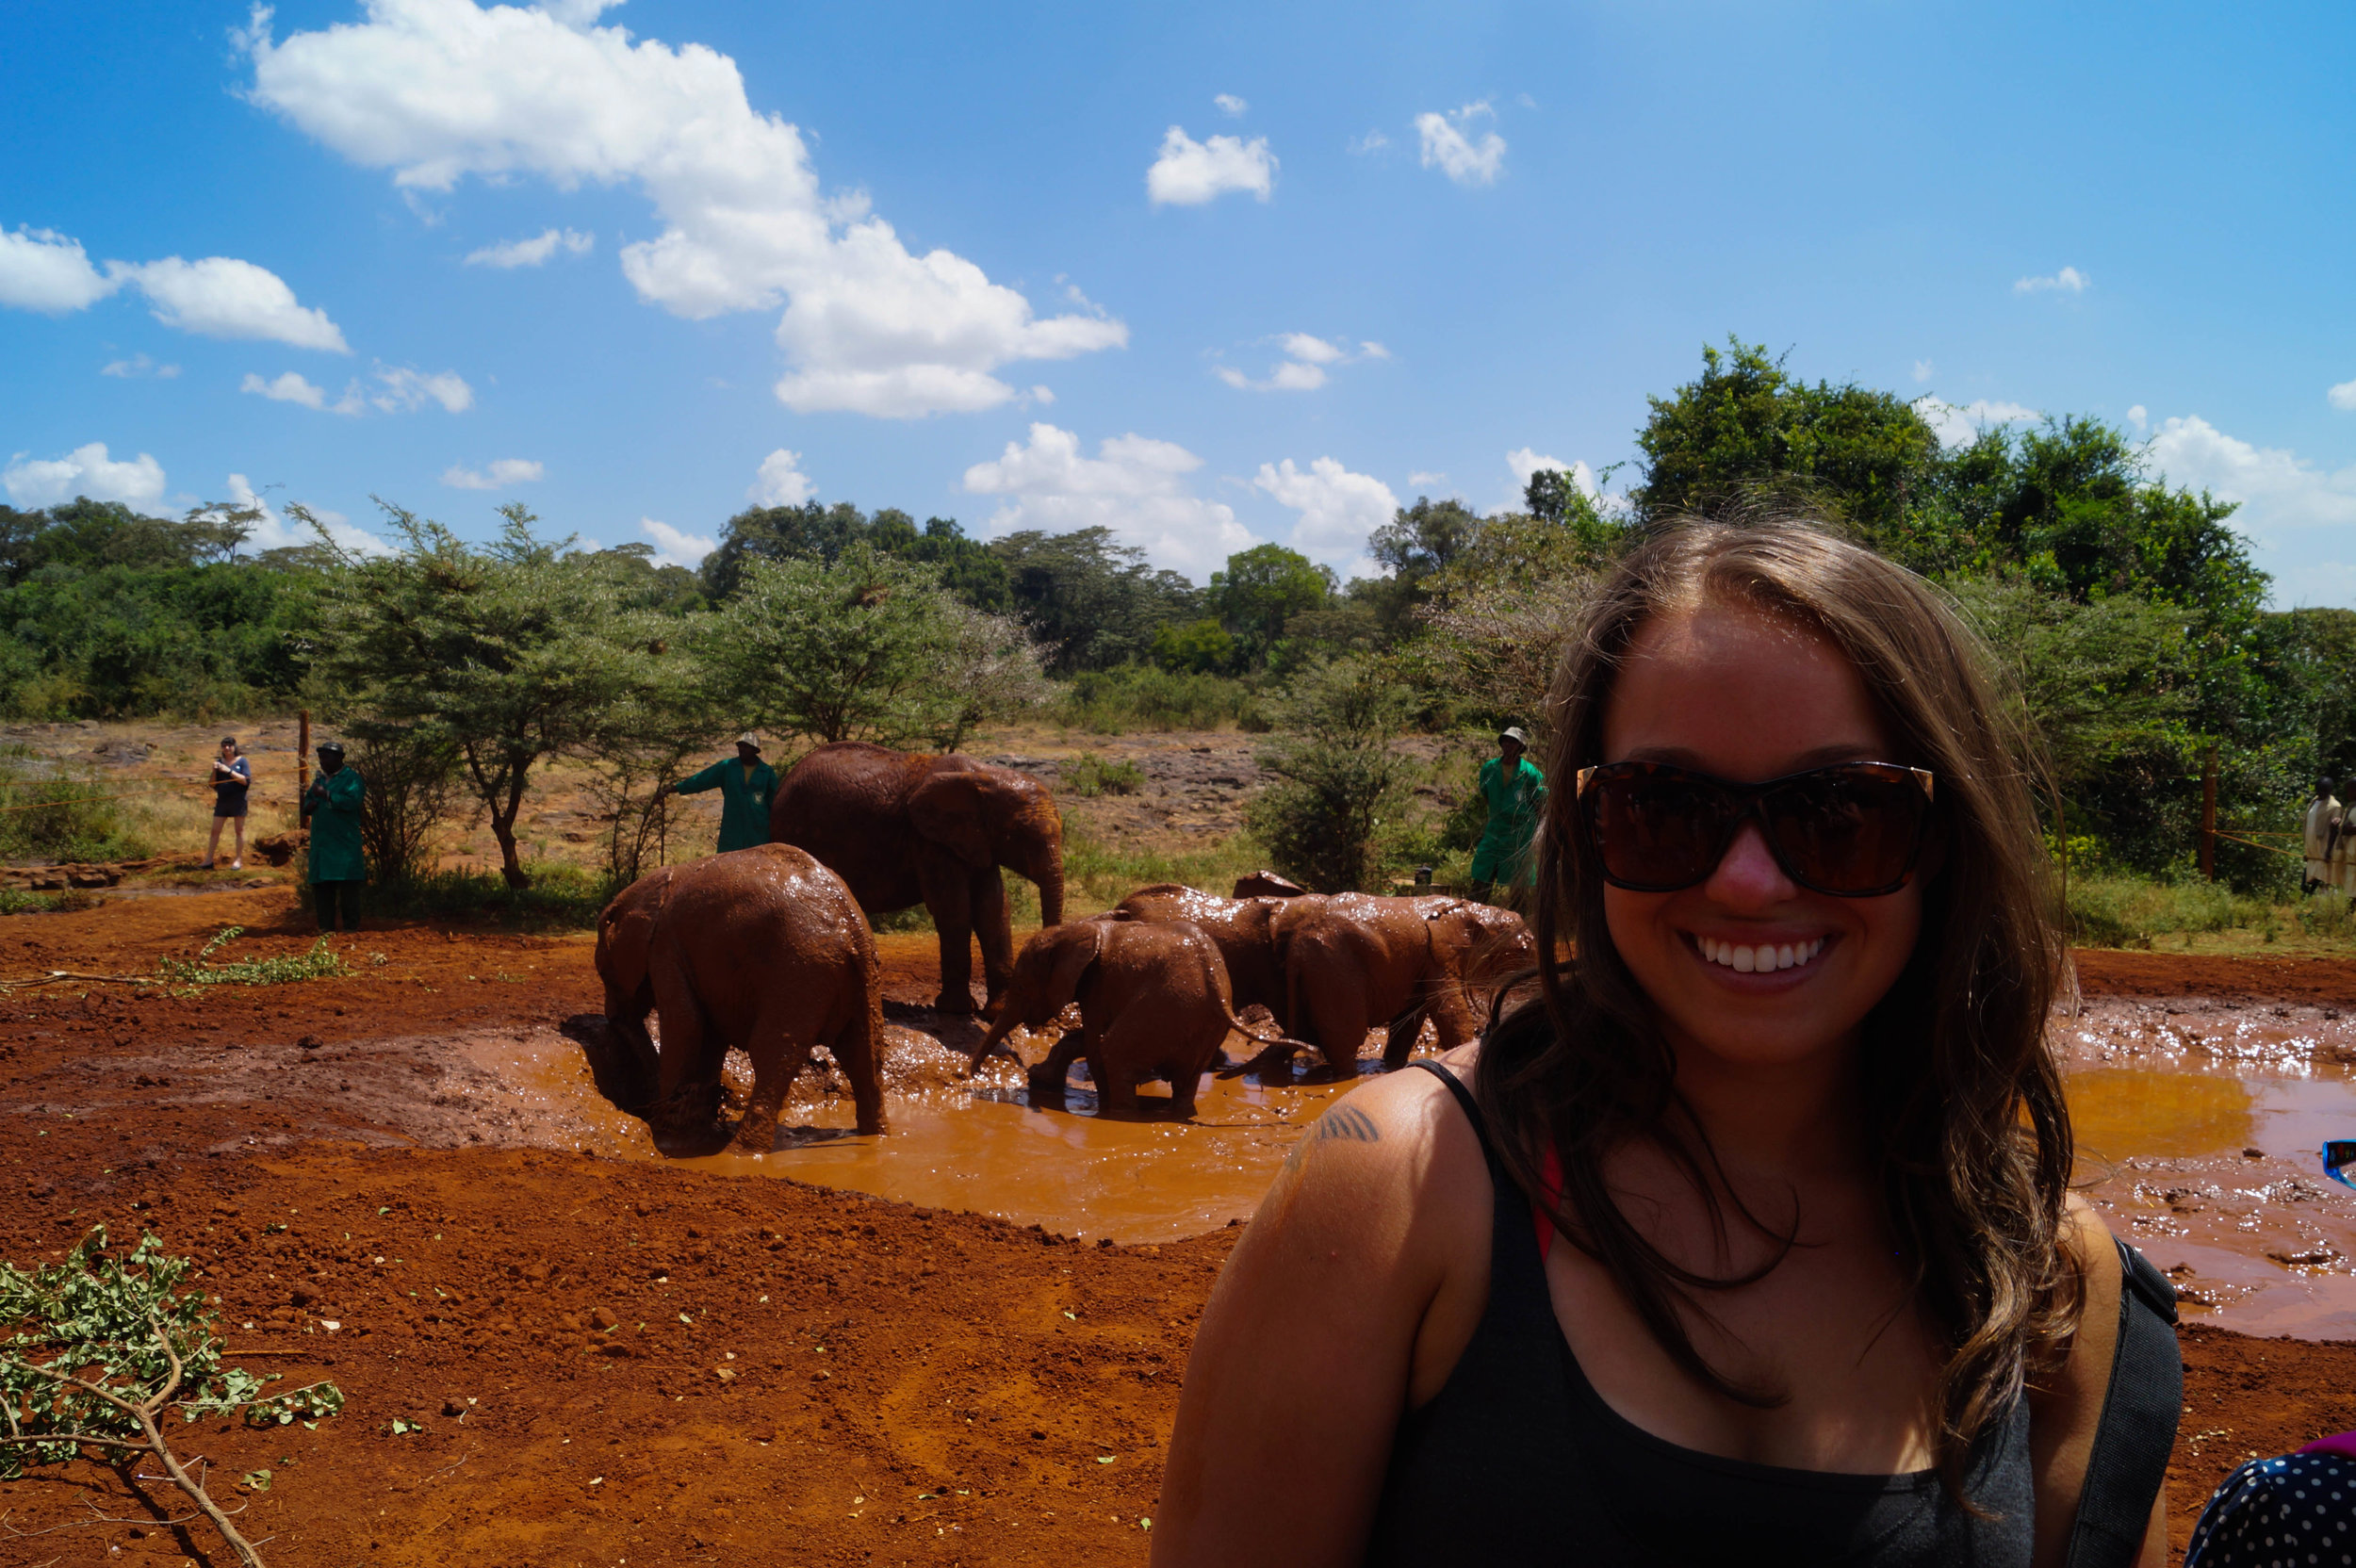 Visiting the orphaned elephant calves at the David Sheldrick Elephant Orphanage